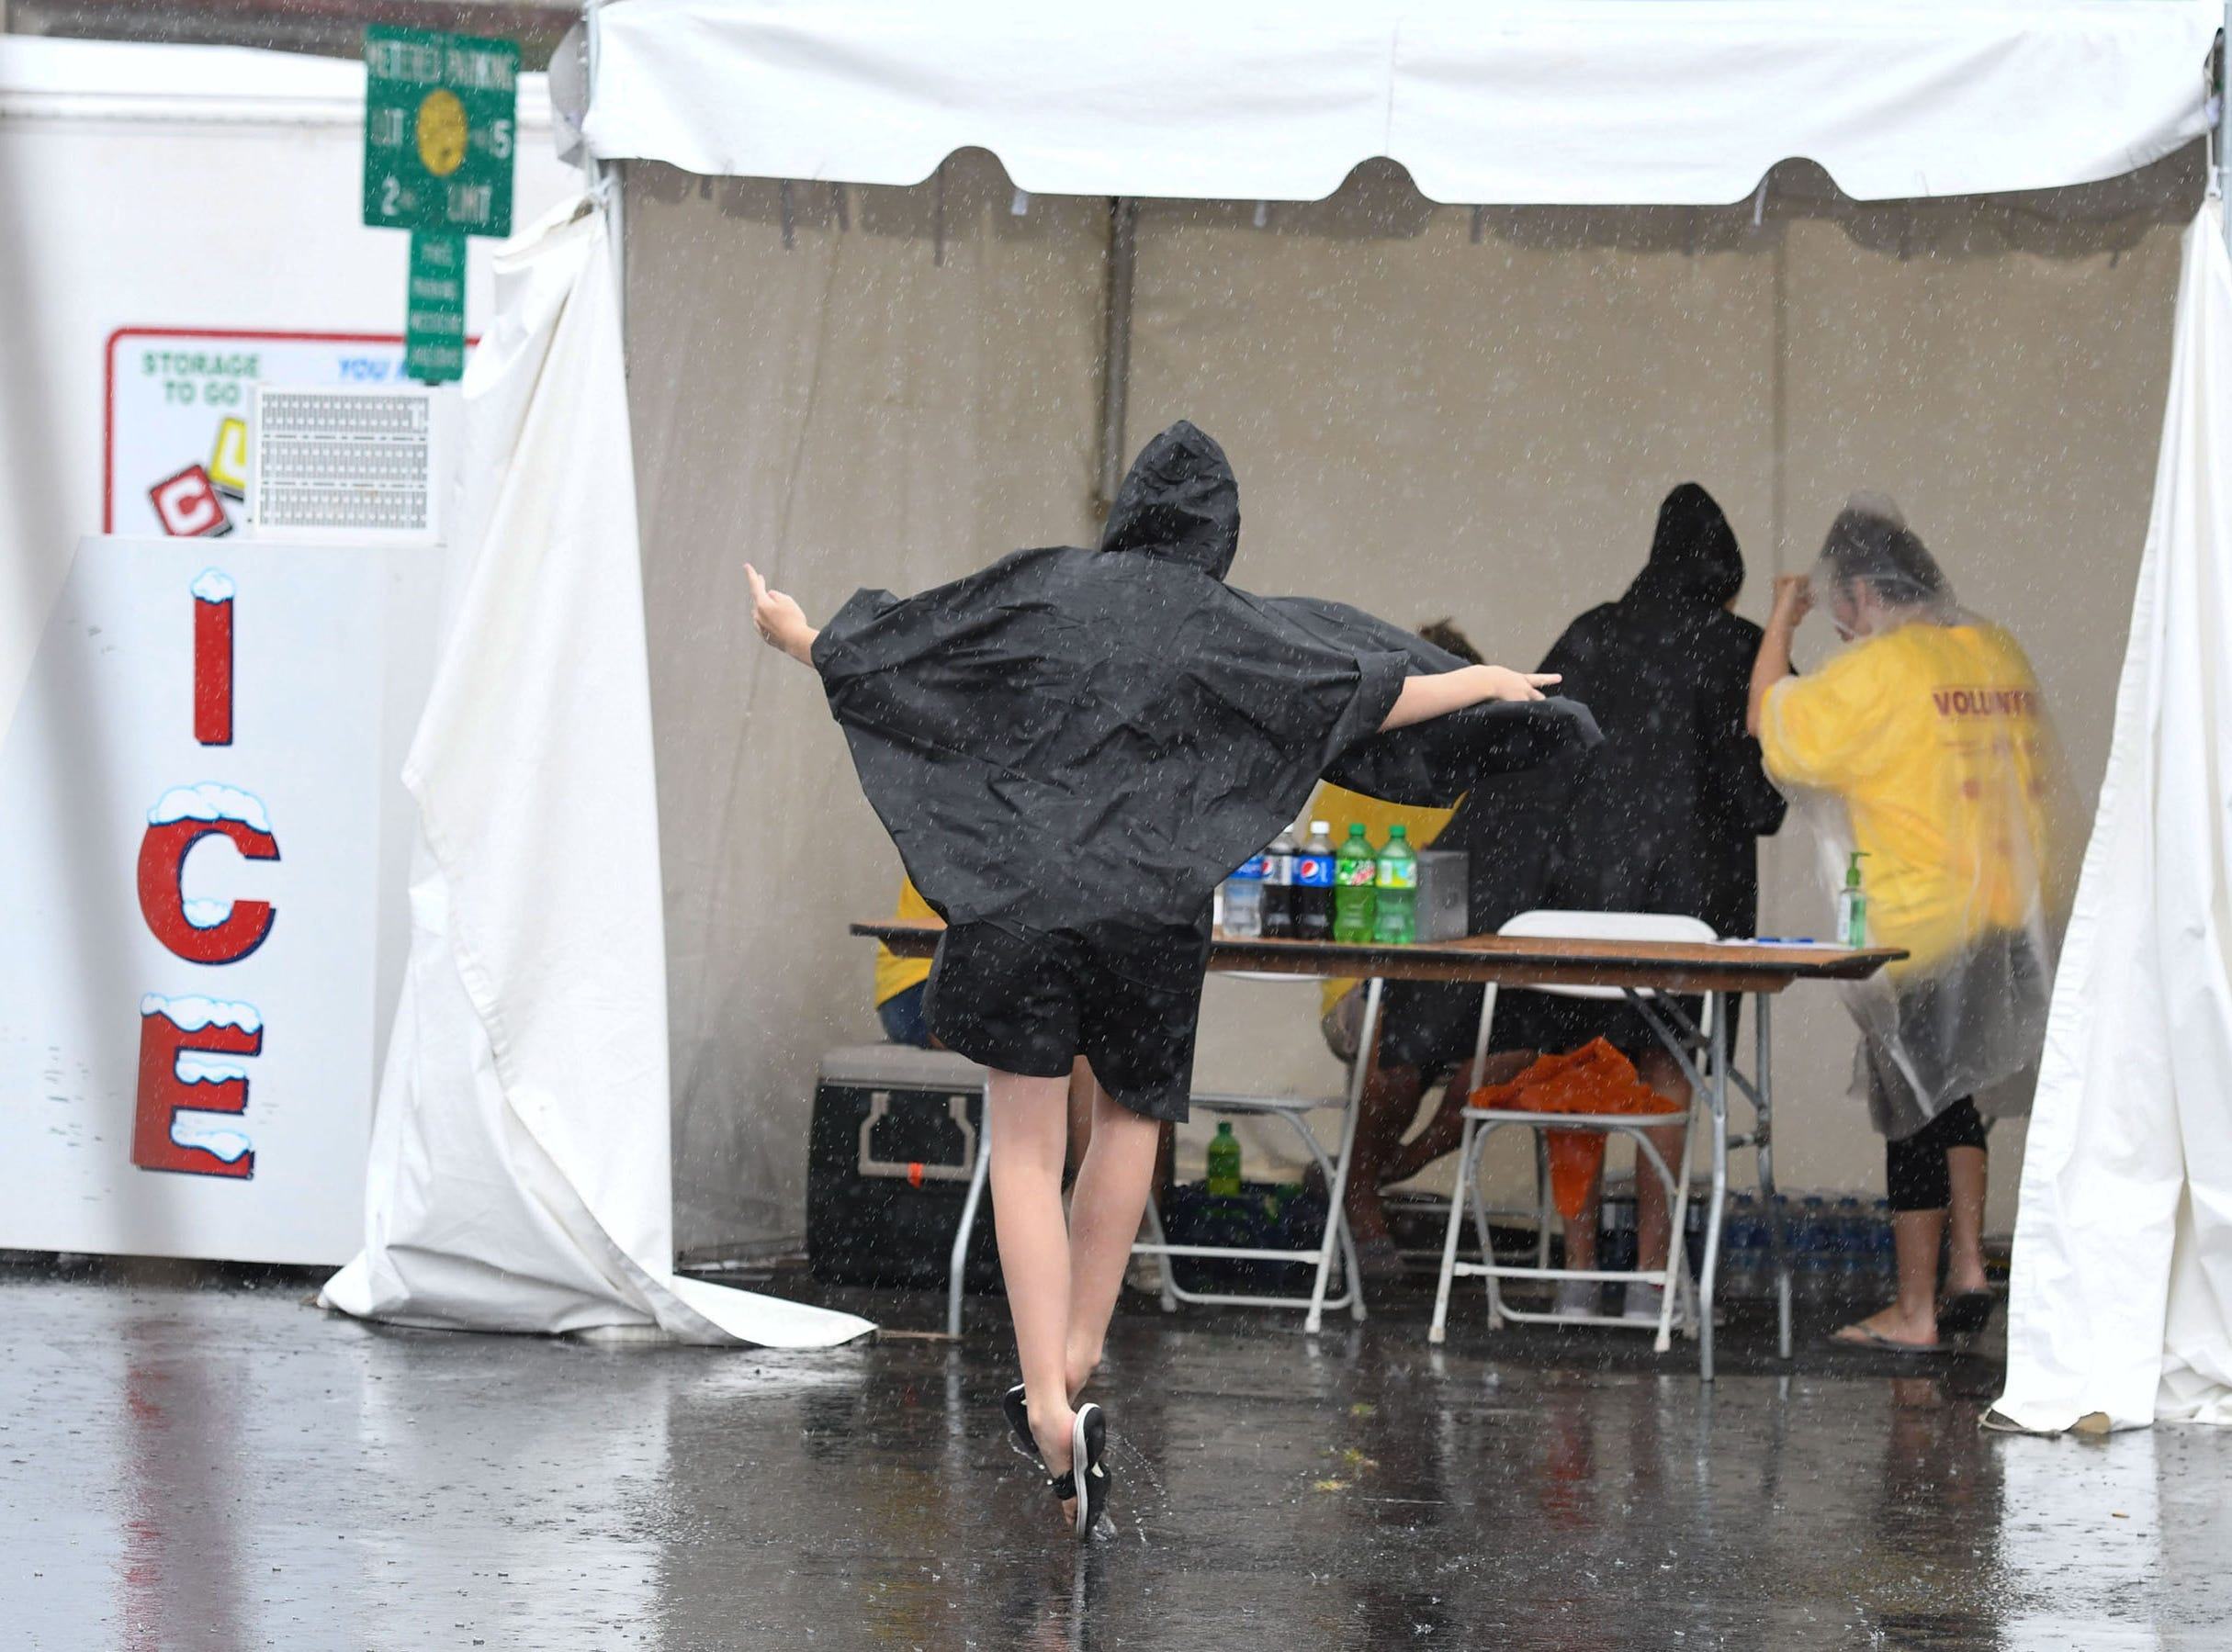 A volunteer takes a moment to practice her ballet in the rain  during the 78th National Folk Festival in Salisbury, Md. on Saturday, Sept. 8, 2018.